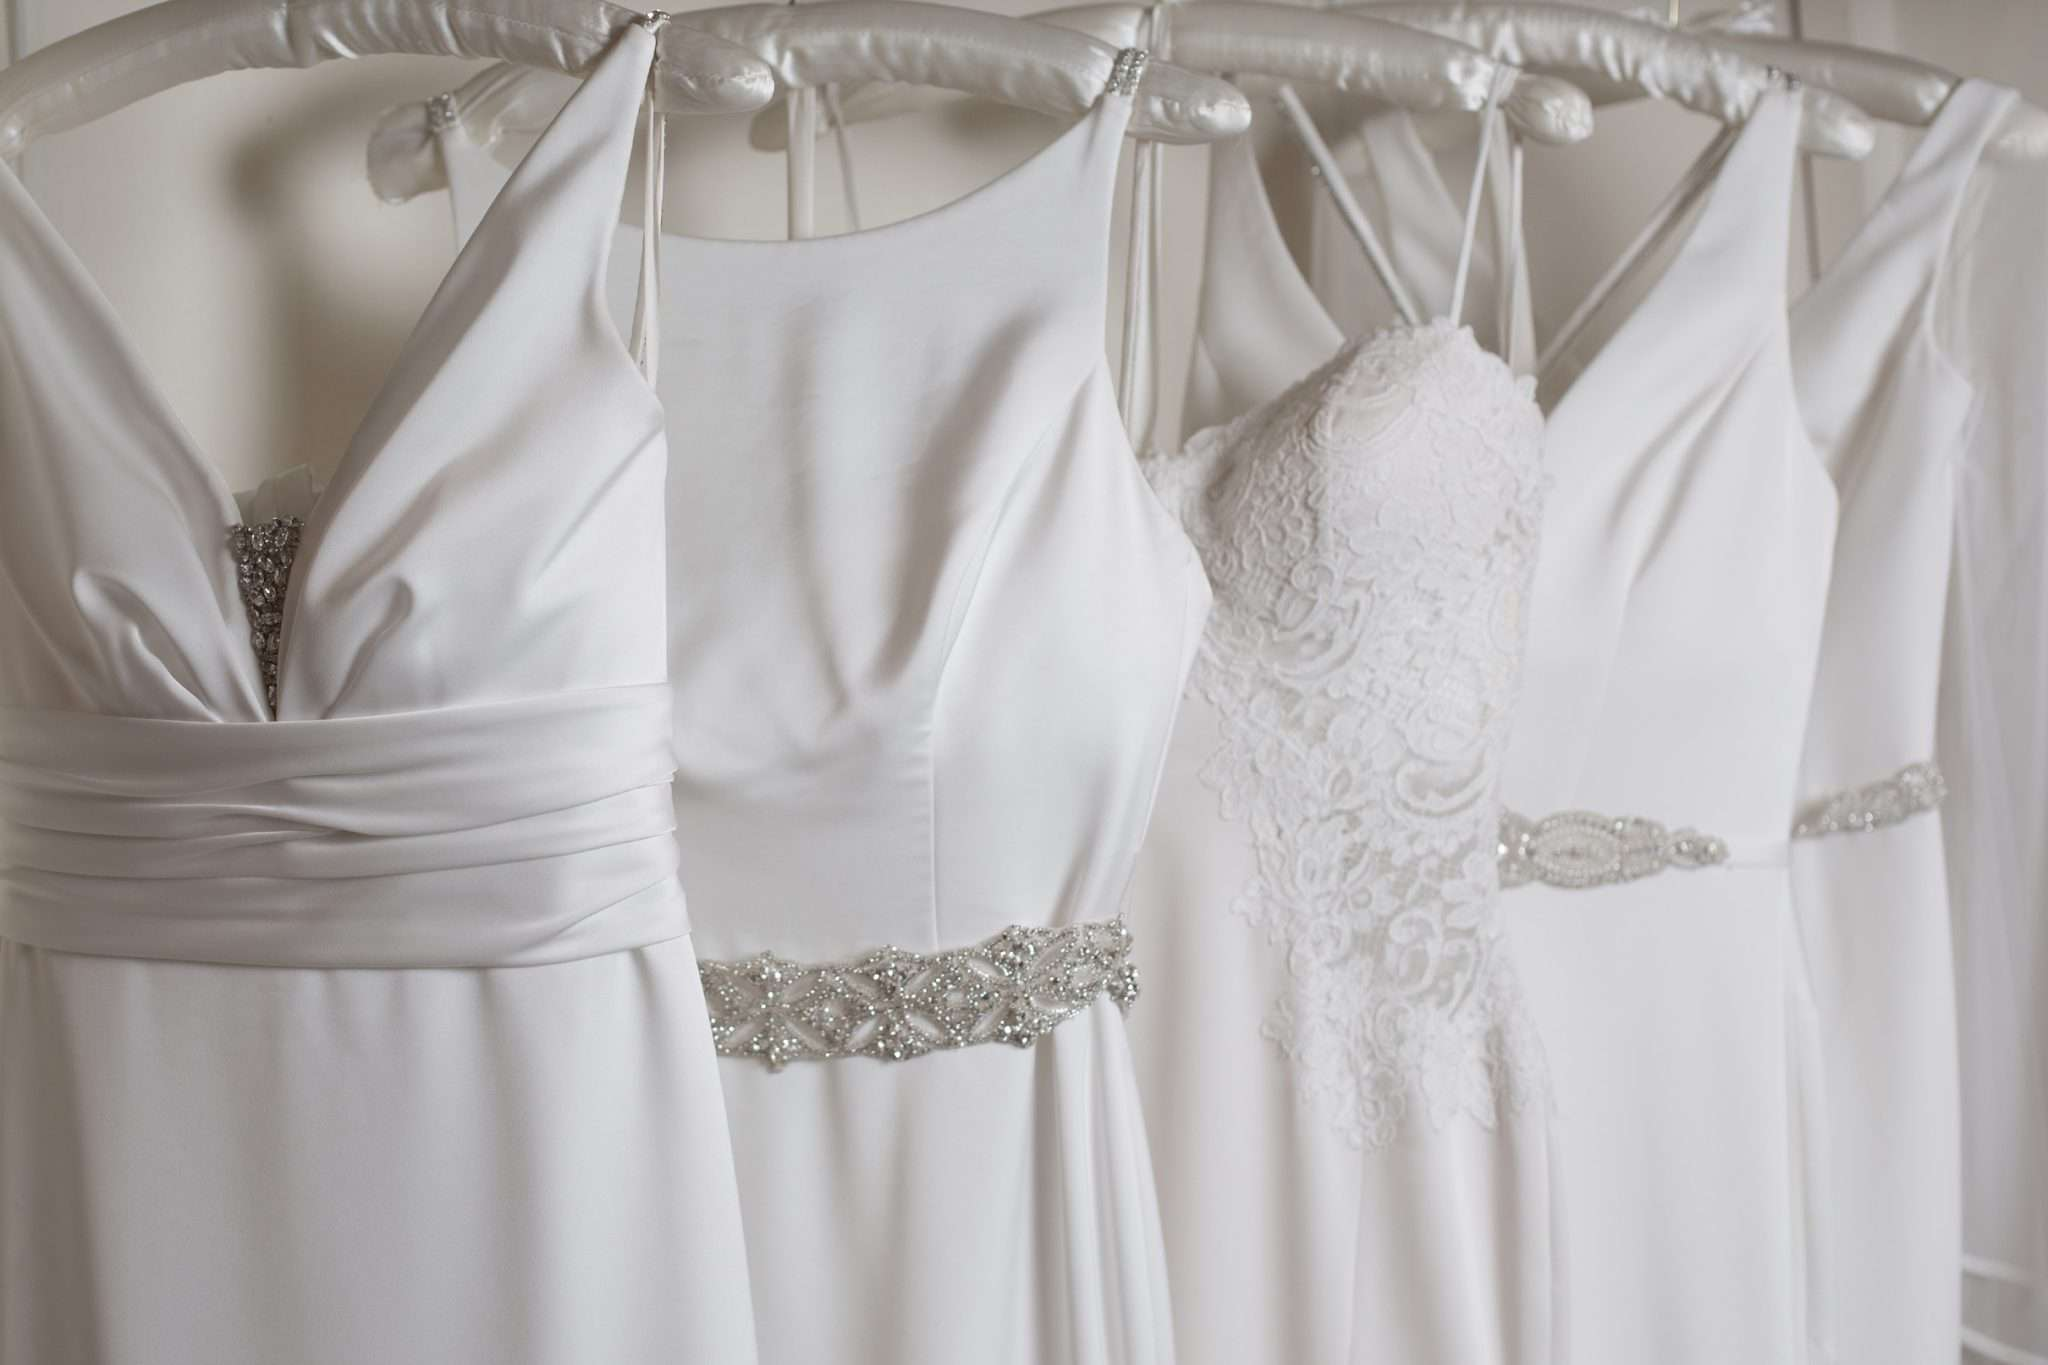 A photo of a row of Wedding Gowns hanging up